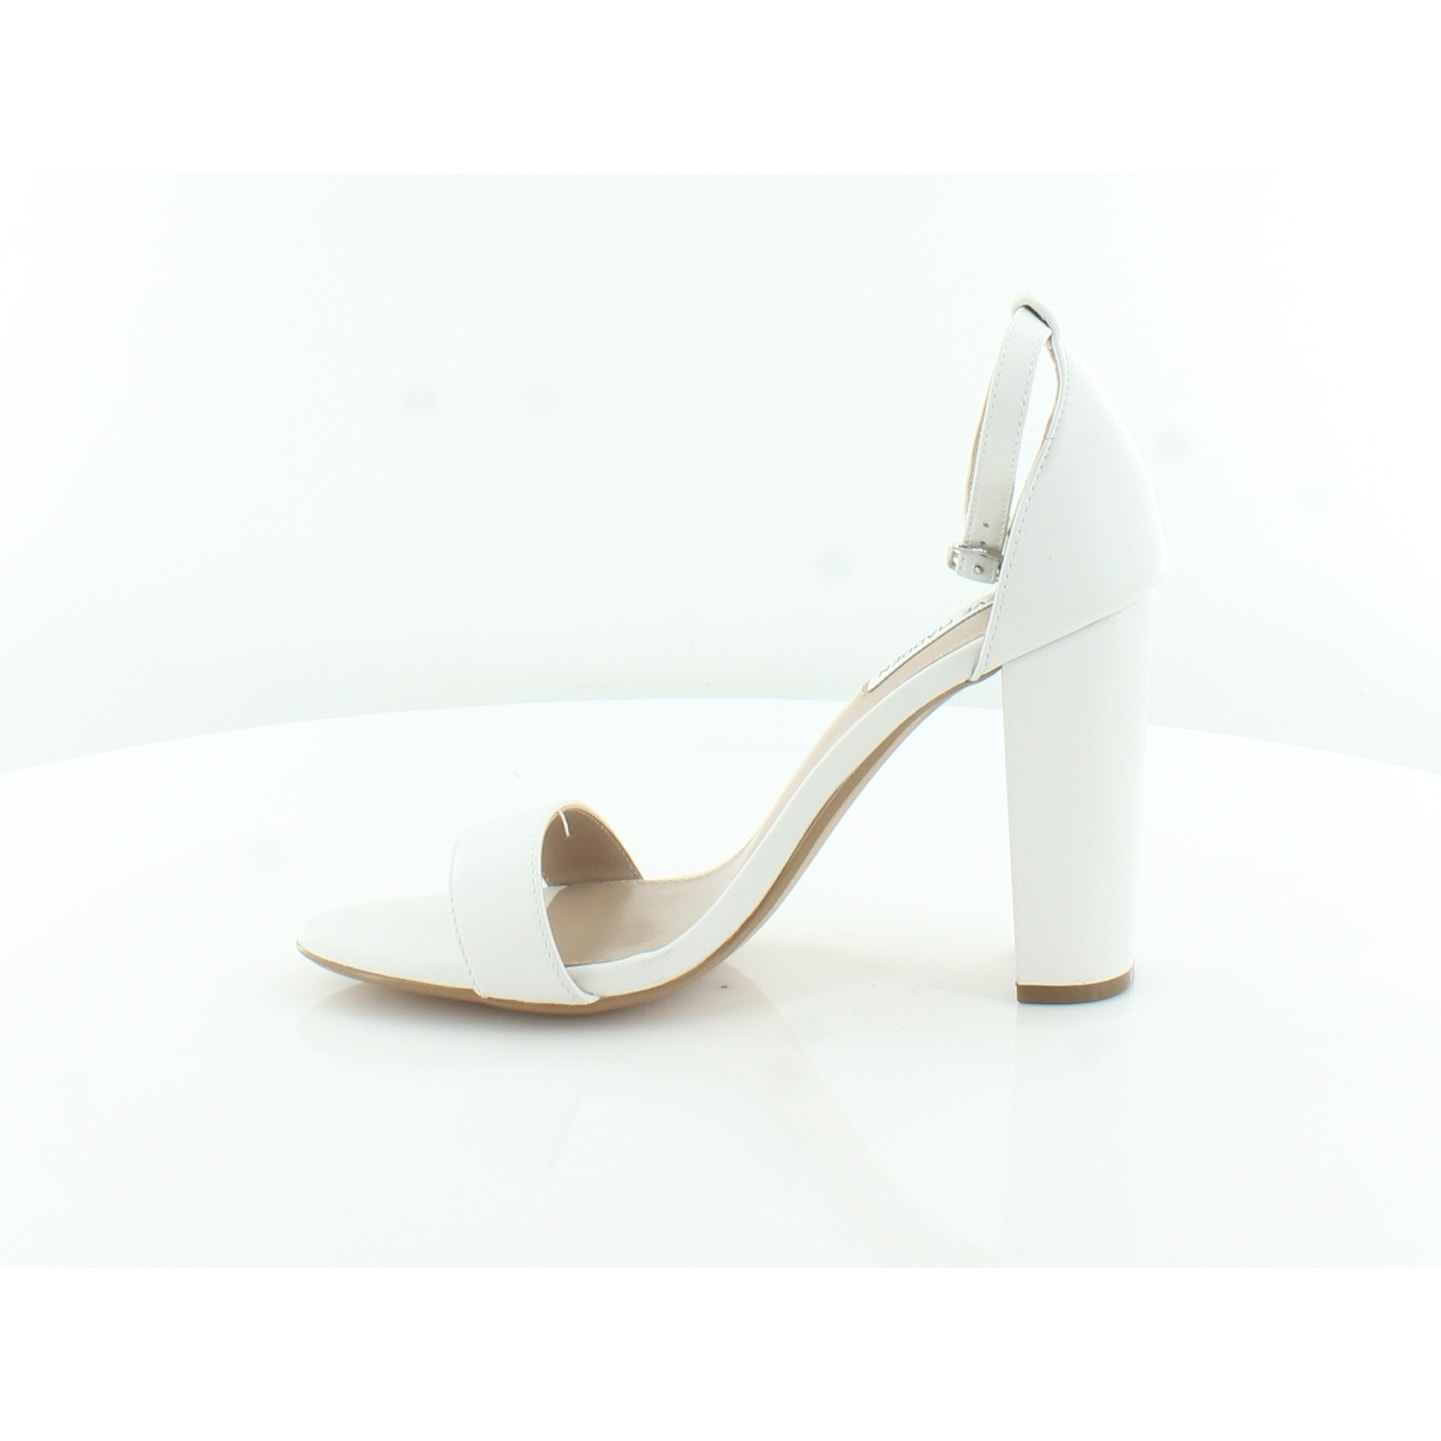 6aee6f3f0ad5 Shop Steve Madden Carrson Women s Heels White - 9 - Free Shipping Today -  Overstock - 27481107